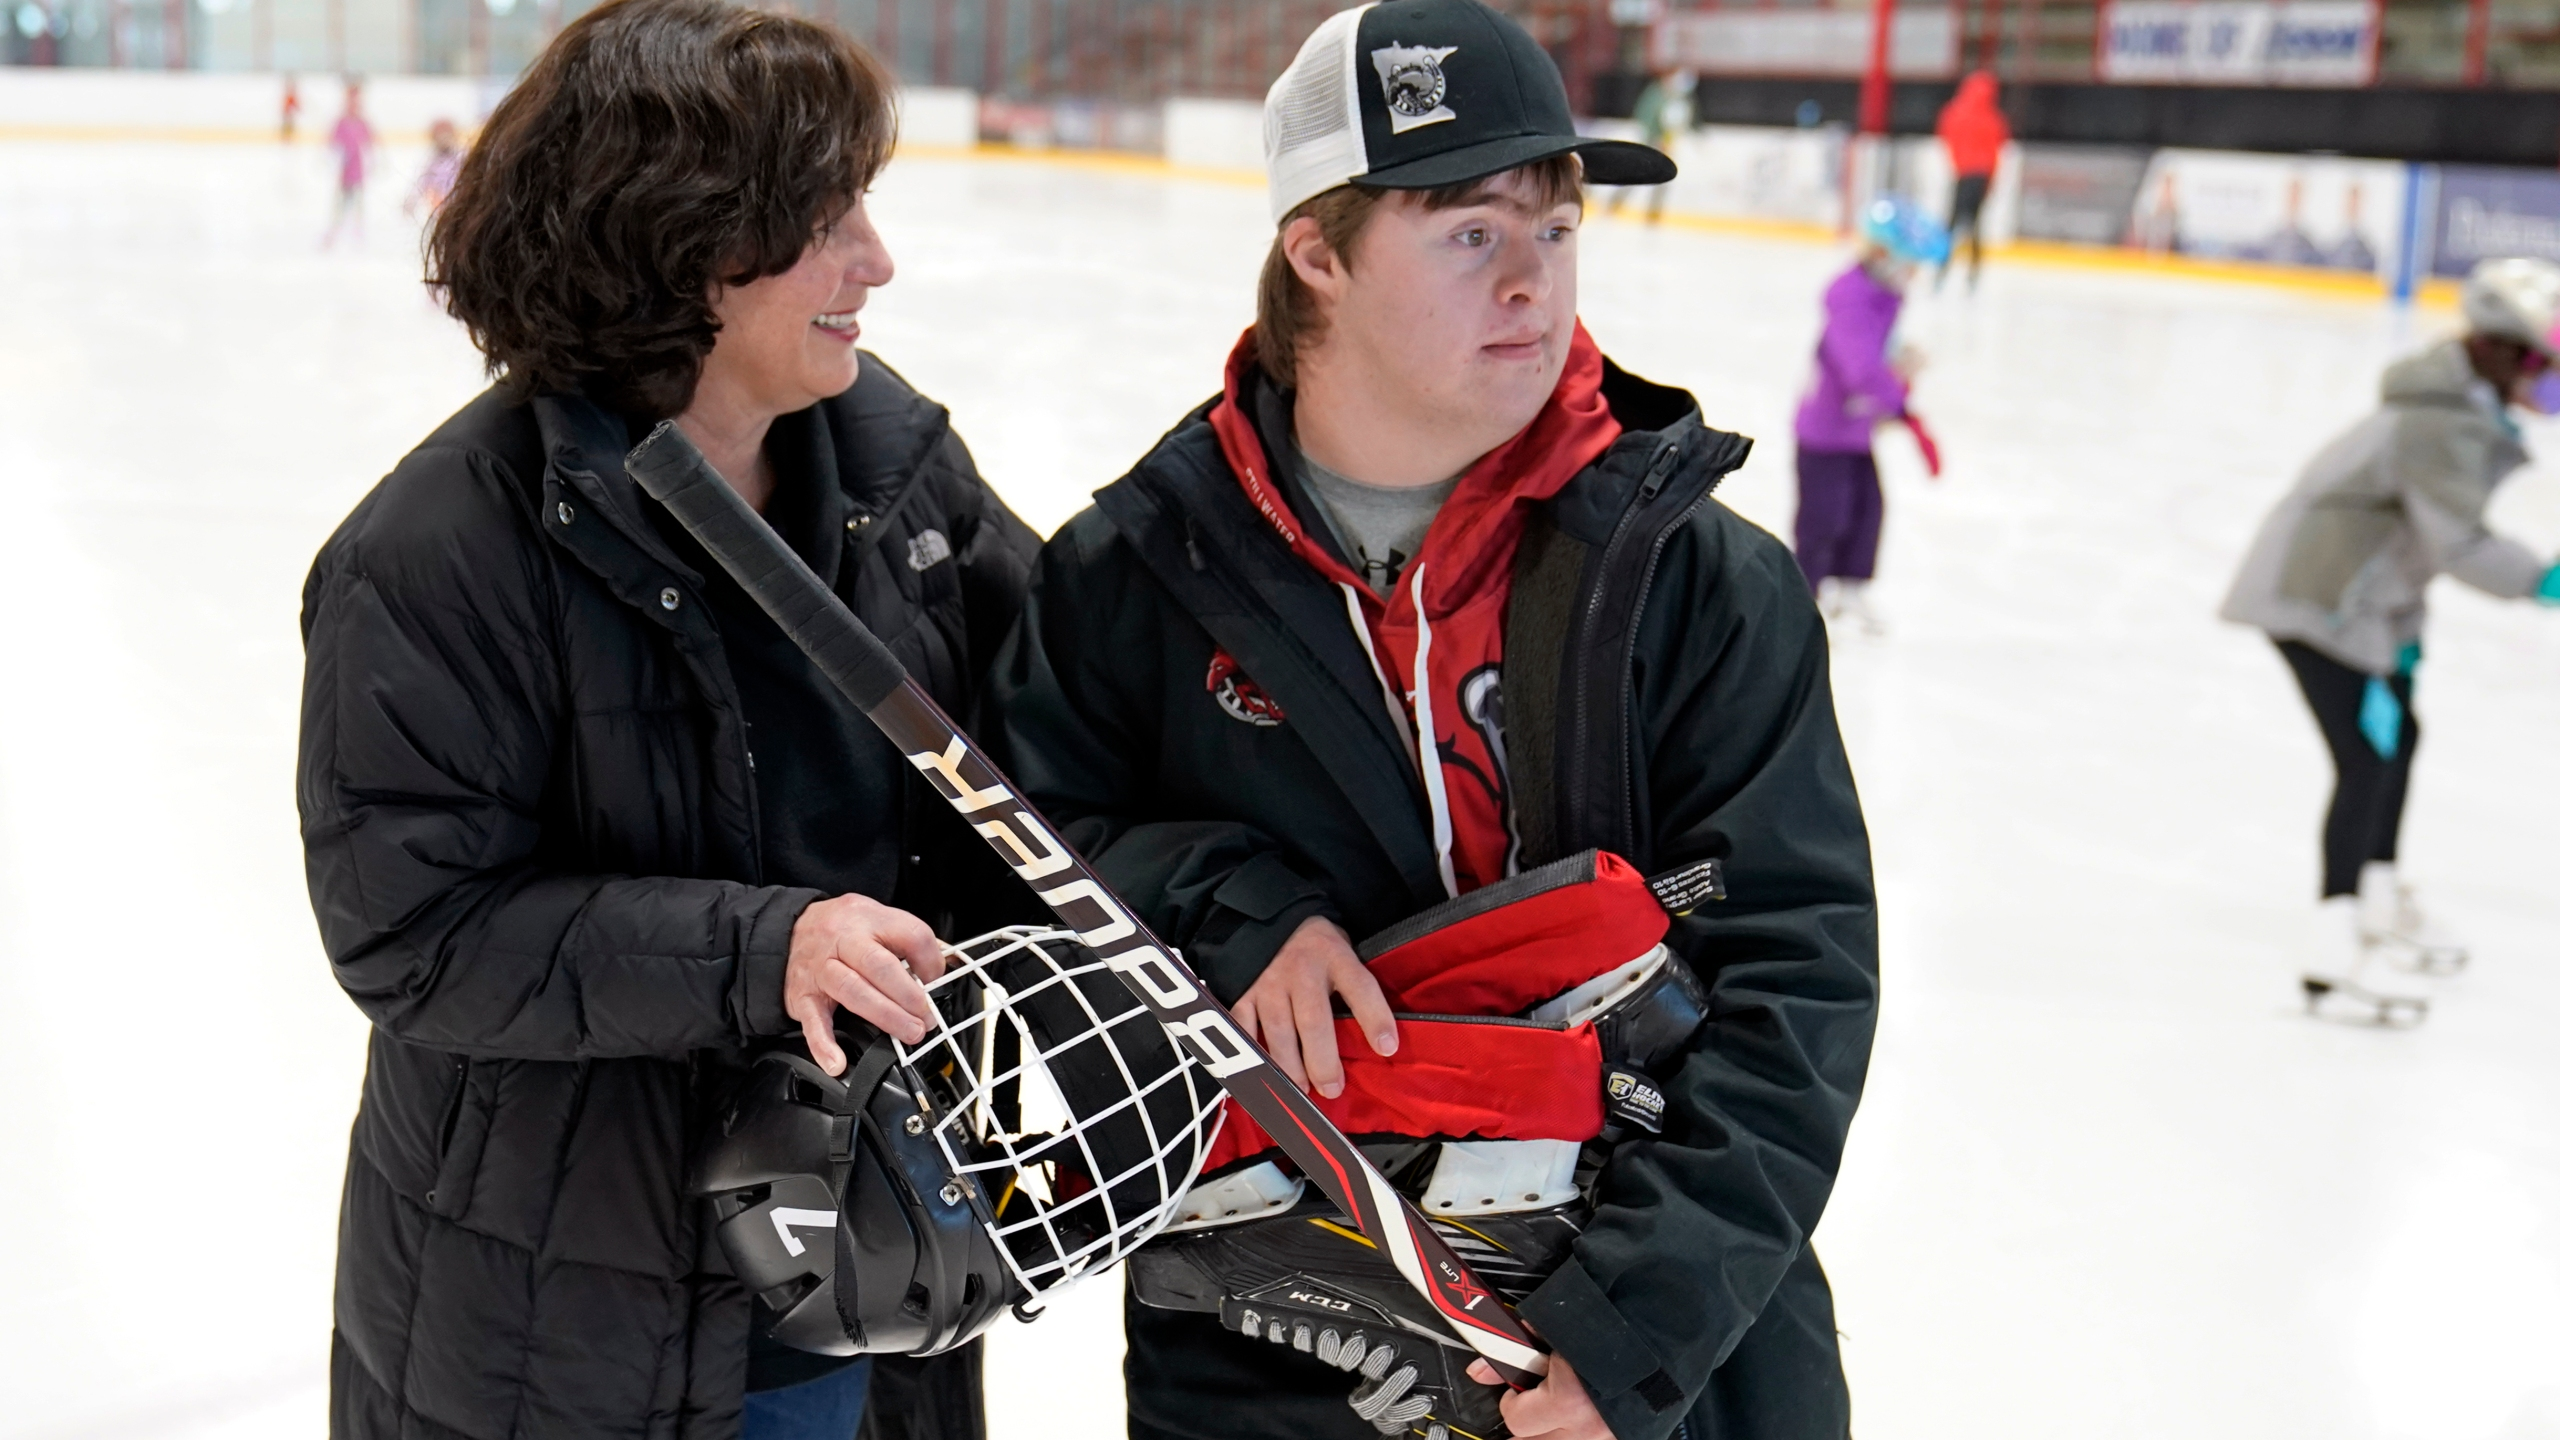 Suzy Lindeberg poses with her 20-year-old son John on a hockey rink, Tuesday, Feb. 9, 2021, in Stillwater, Minn. John, who has Down Syndrome, can't spend as much time at the rink as he used to since he is at higher risk for hospitalization or death if he caught COVID-19, but his mother and other advocates worry that the state of Minnesota has placed people with disabilities too far down the priority list. (AP Photo/Jim Mone)